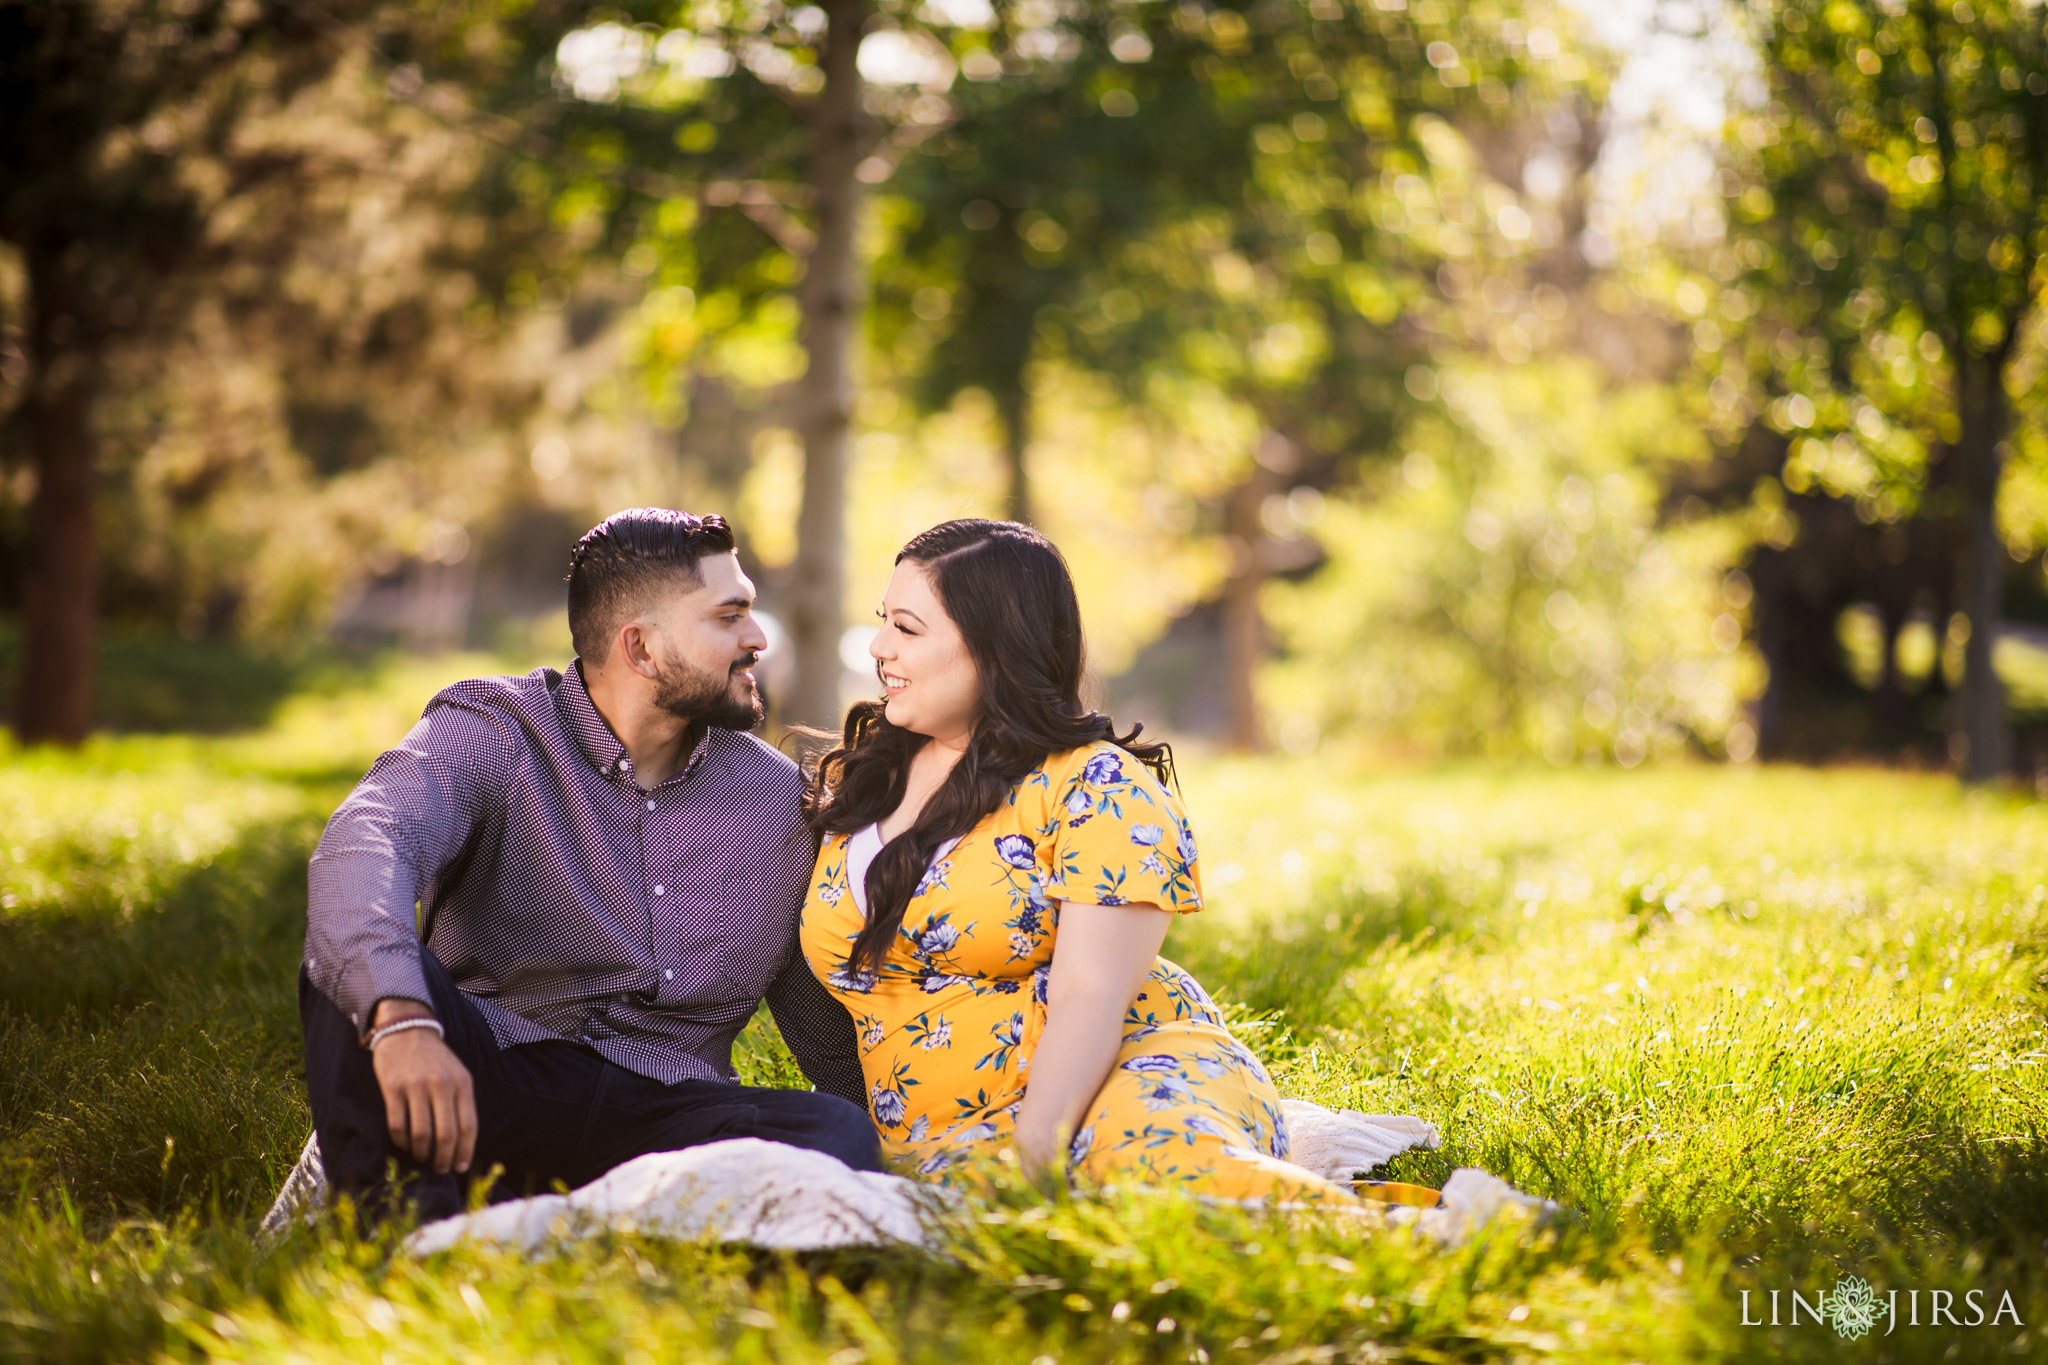 zmsantos Jeffrey Open Space Orange County Engagement Photography